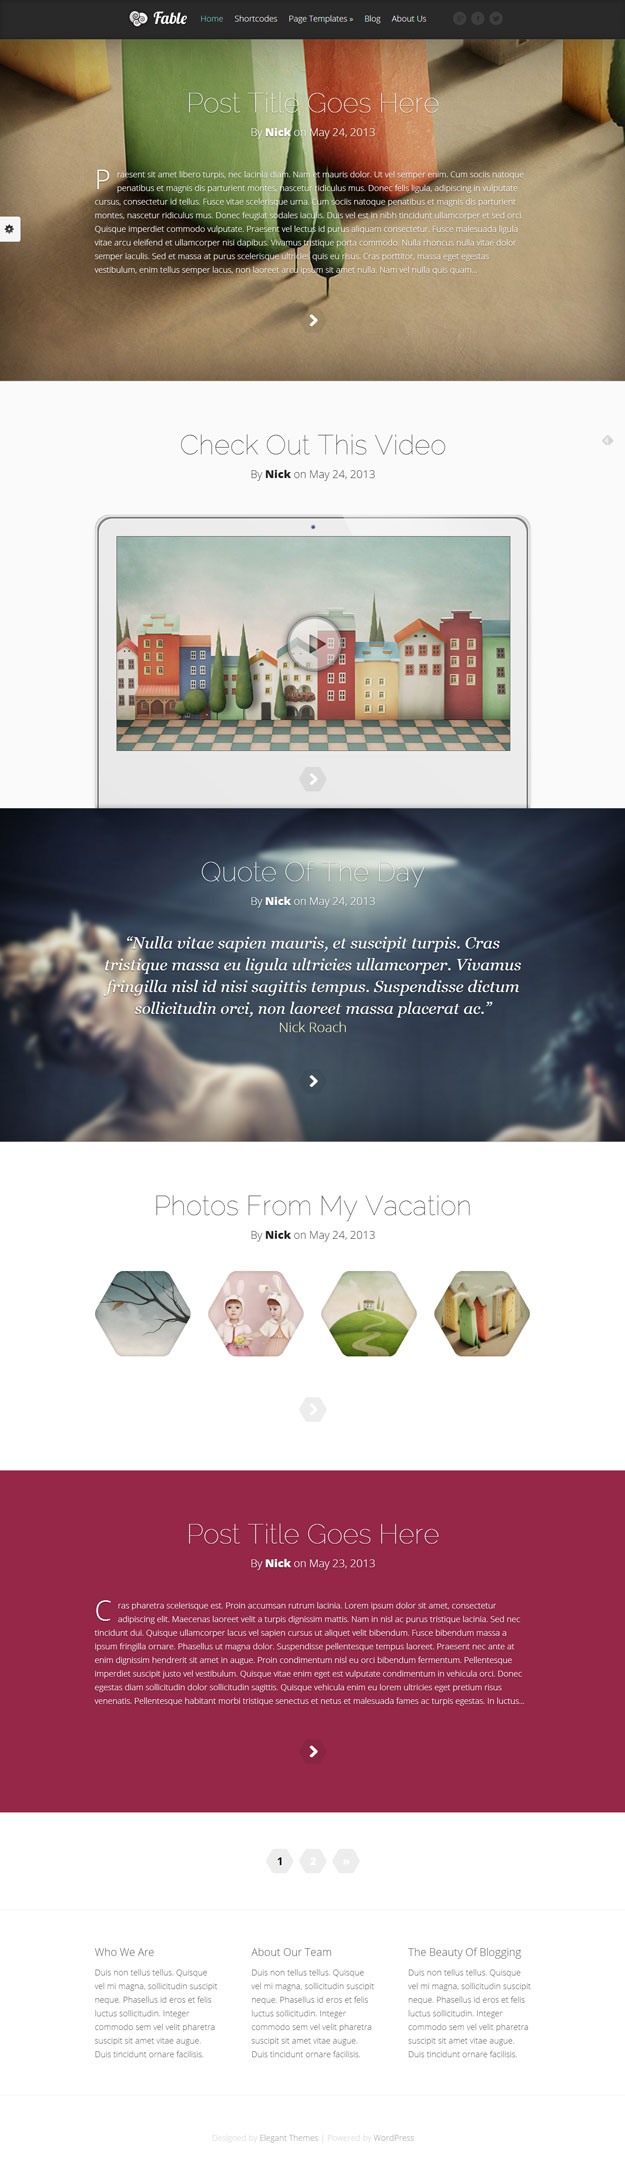 fable tumblr like wordpress theme